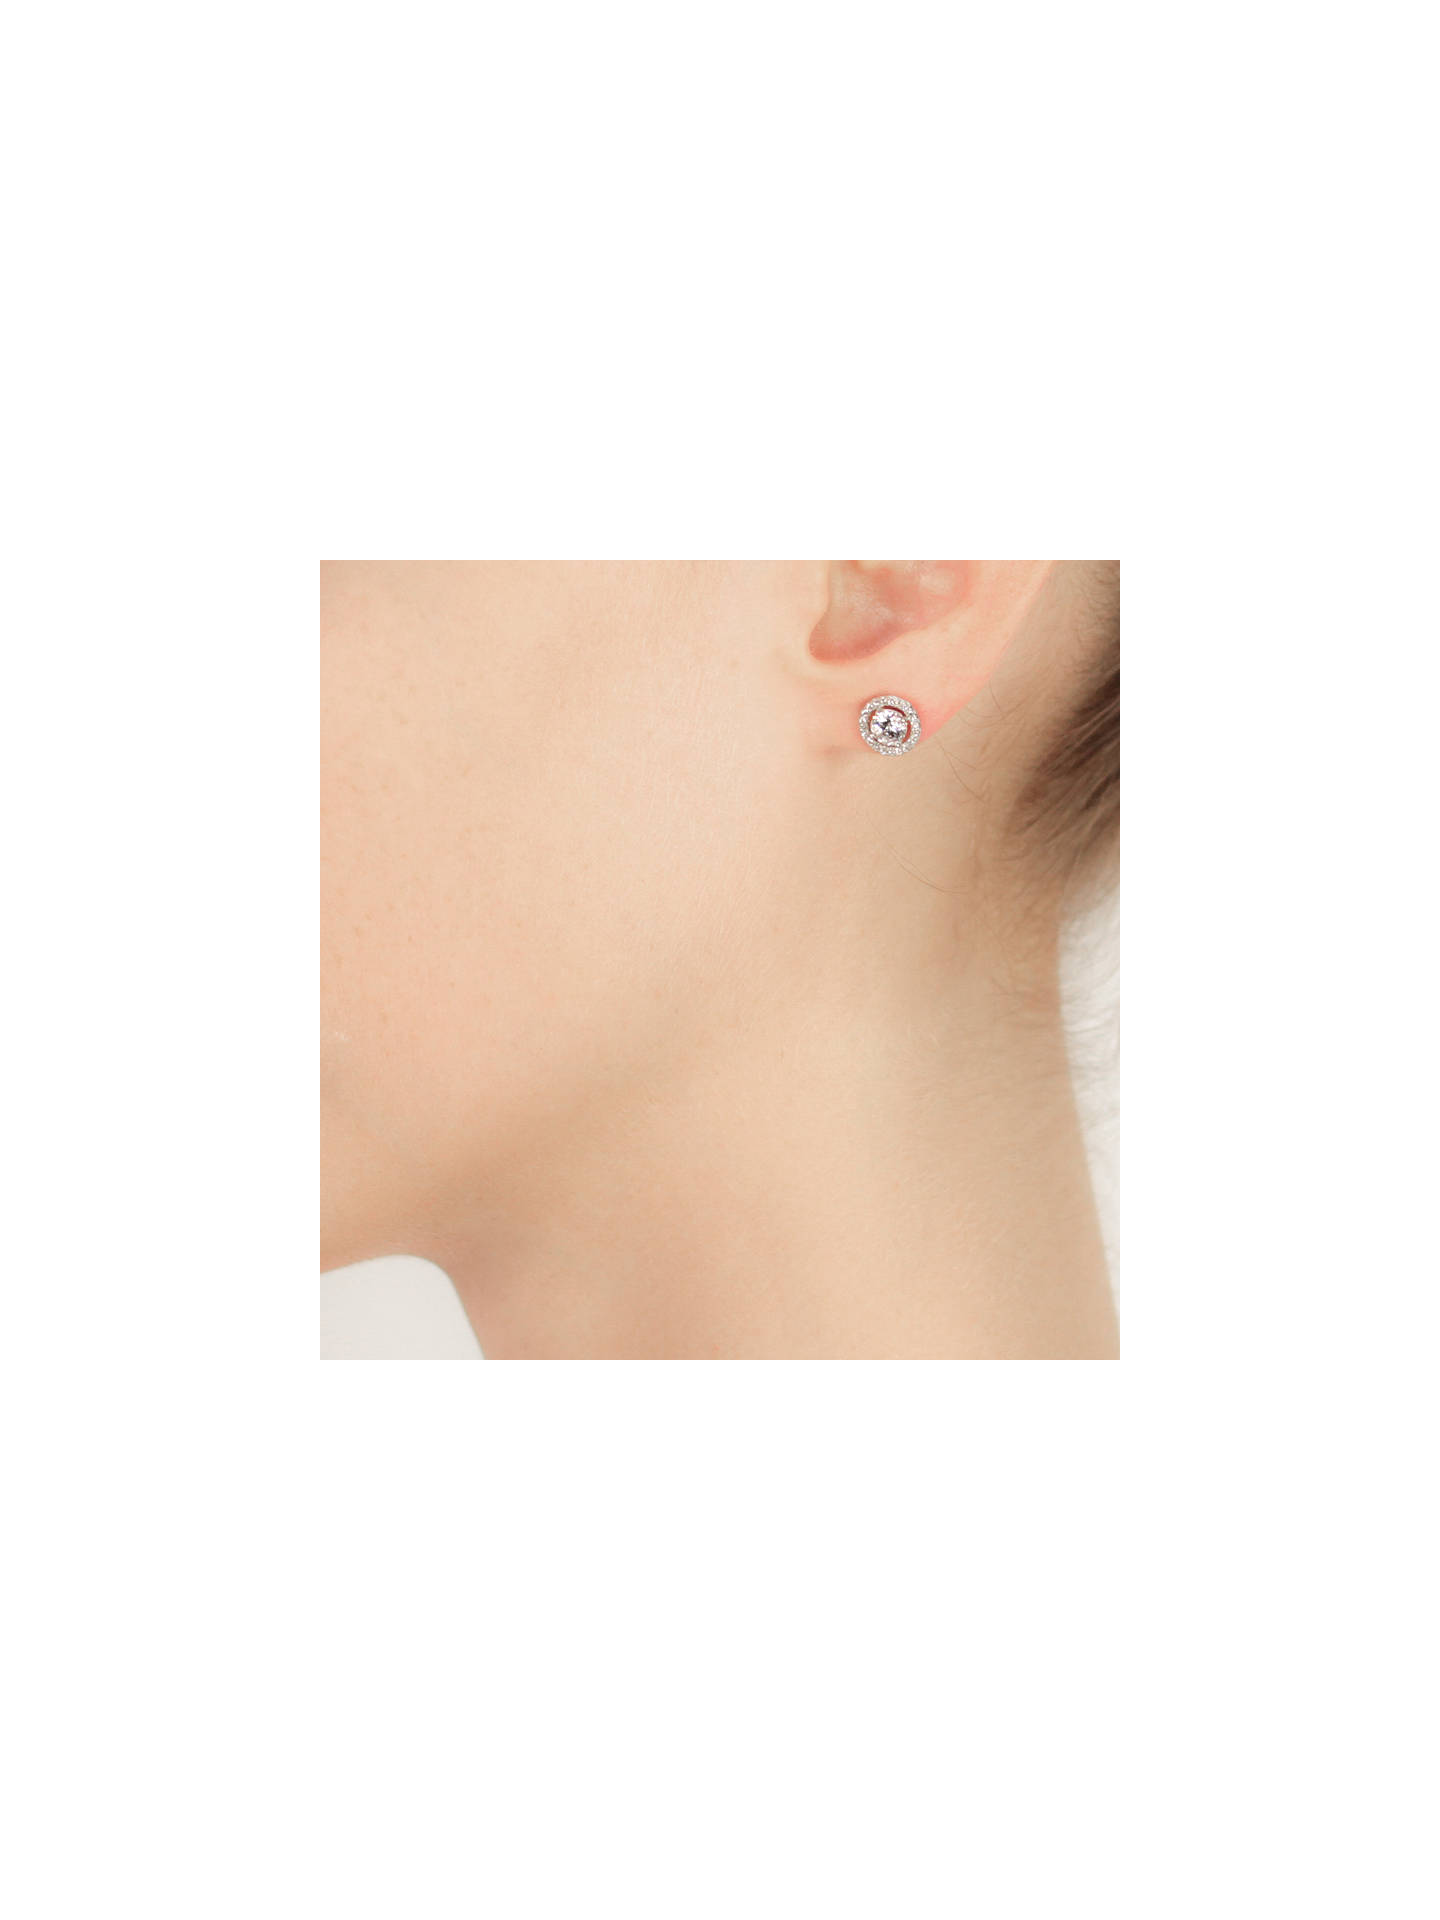 BuyCARAT* London Sterling Silver Border Round Stud Earrings, Clear Online at johnlewis.com